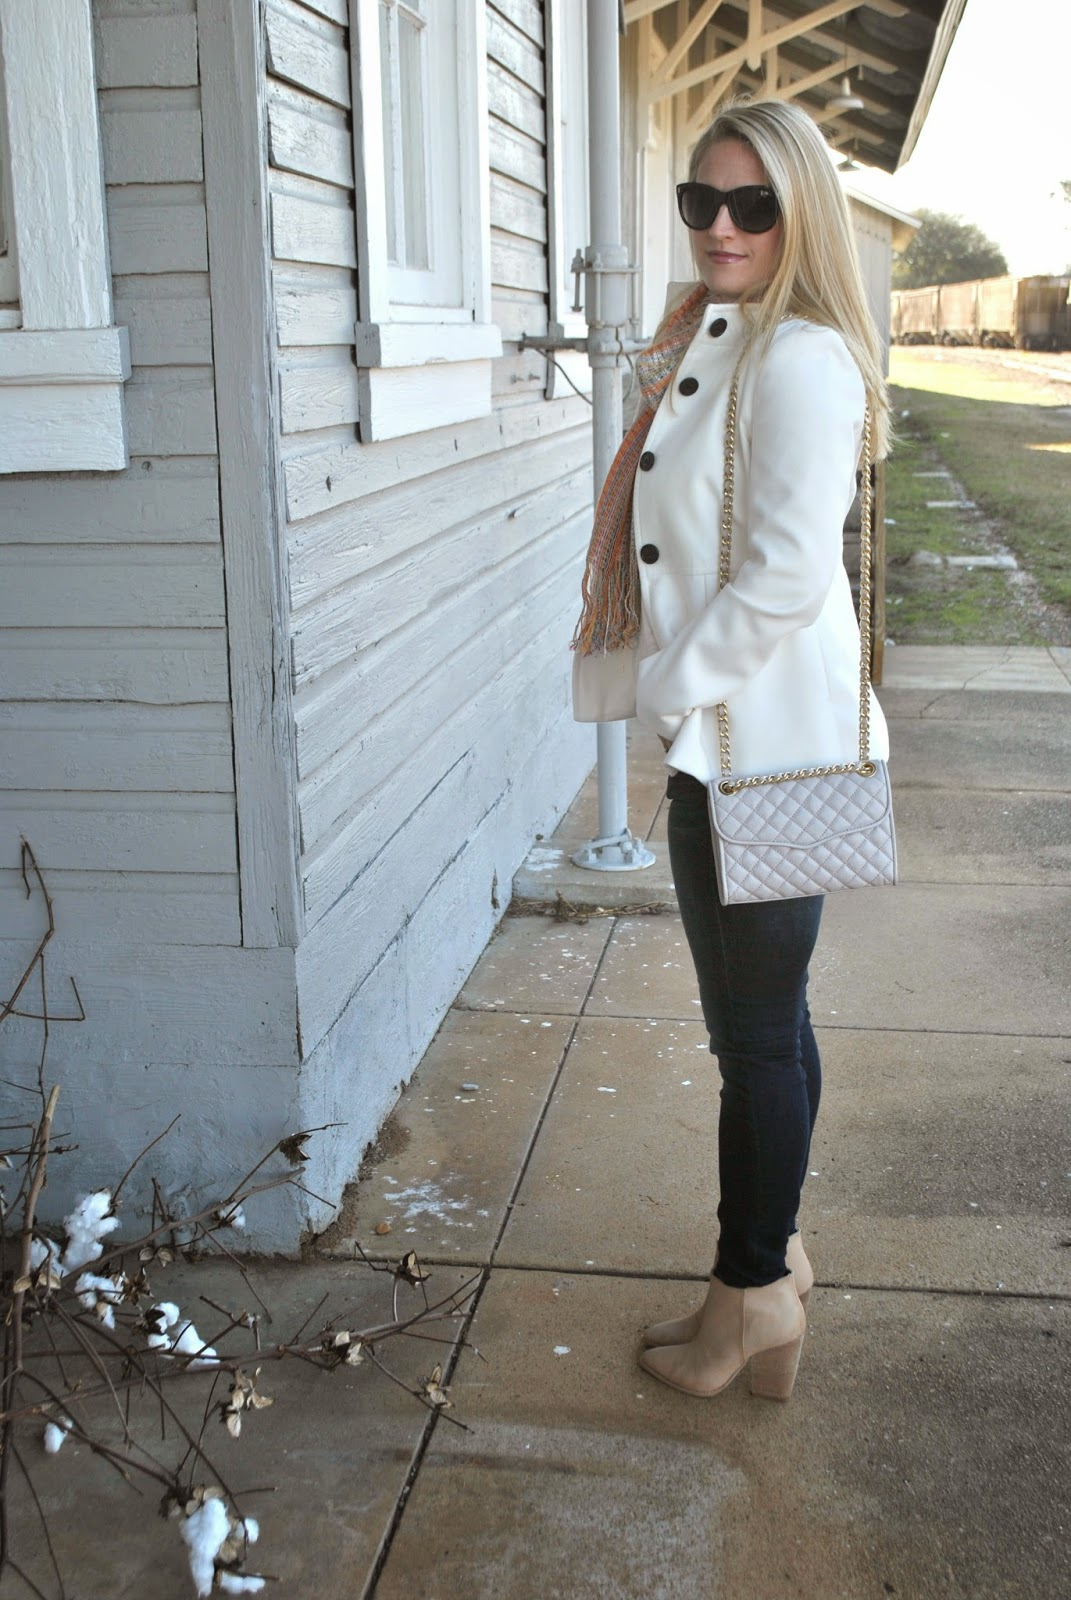 Missoni Scarf, Rebecca Minkoff Quilted Handbag, Ankle Boots, J Crew Sunglasses